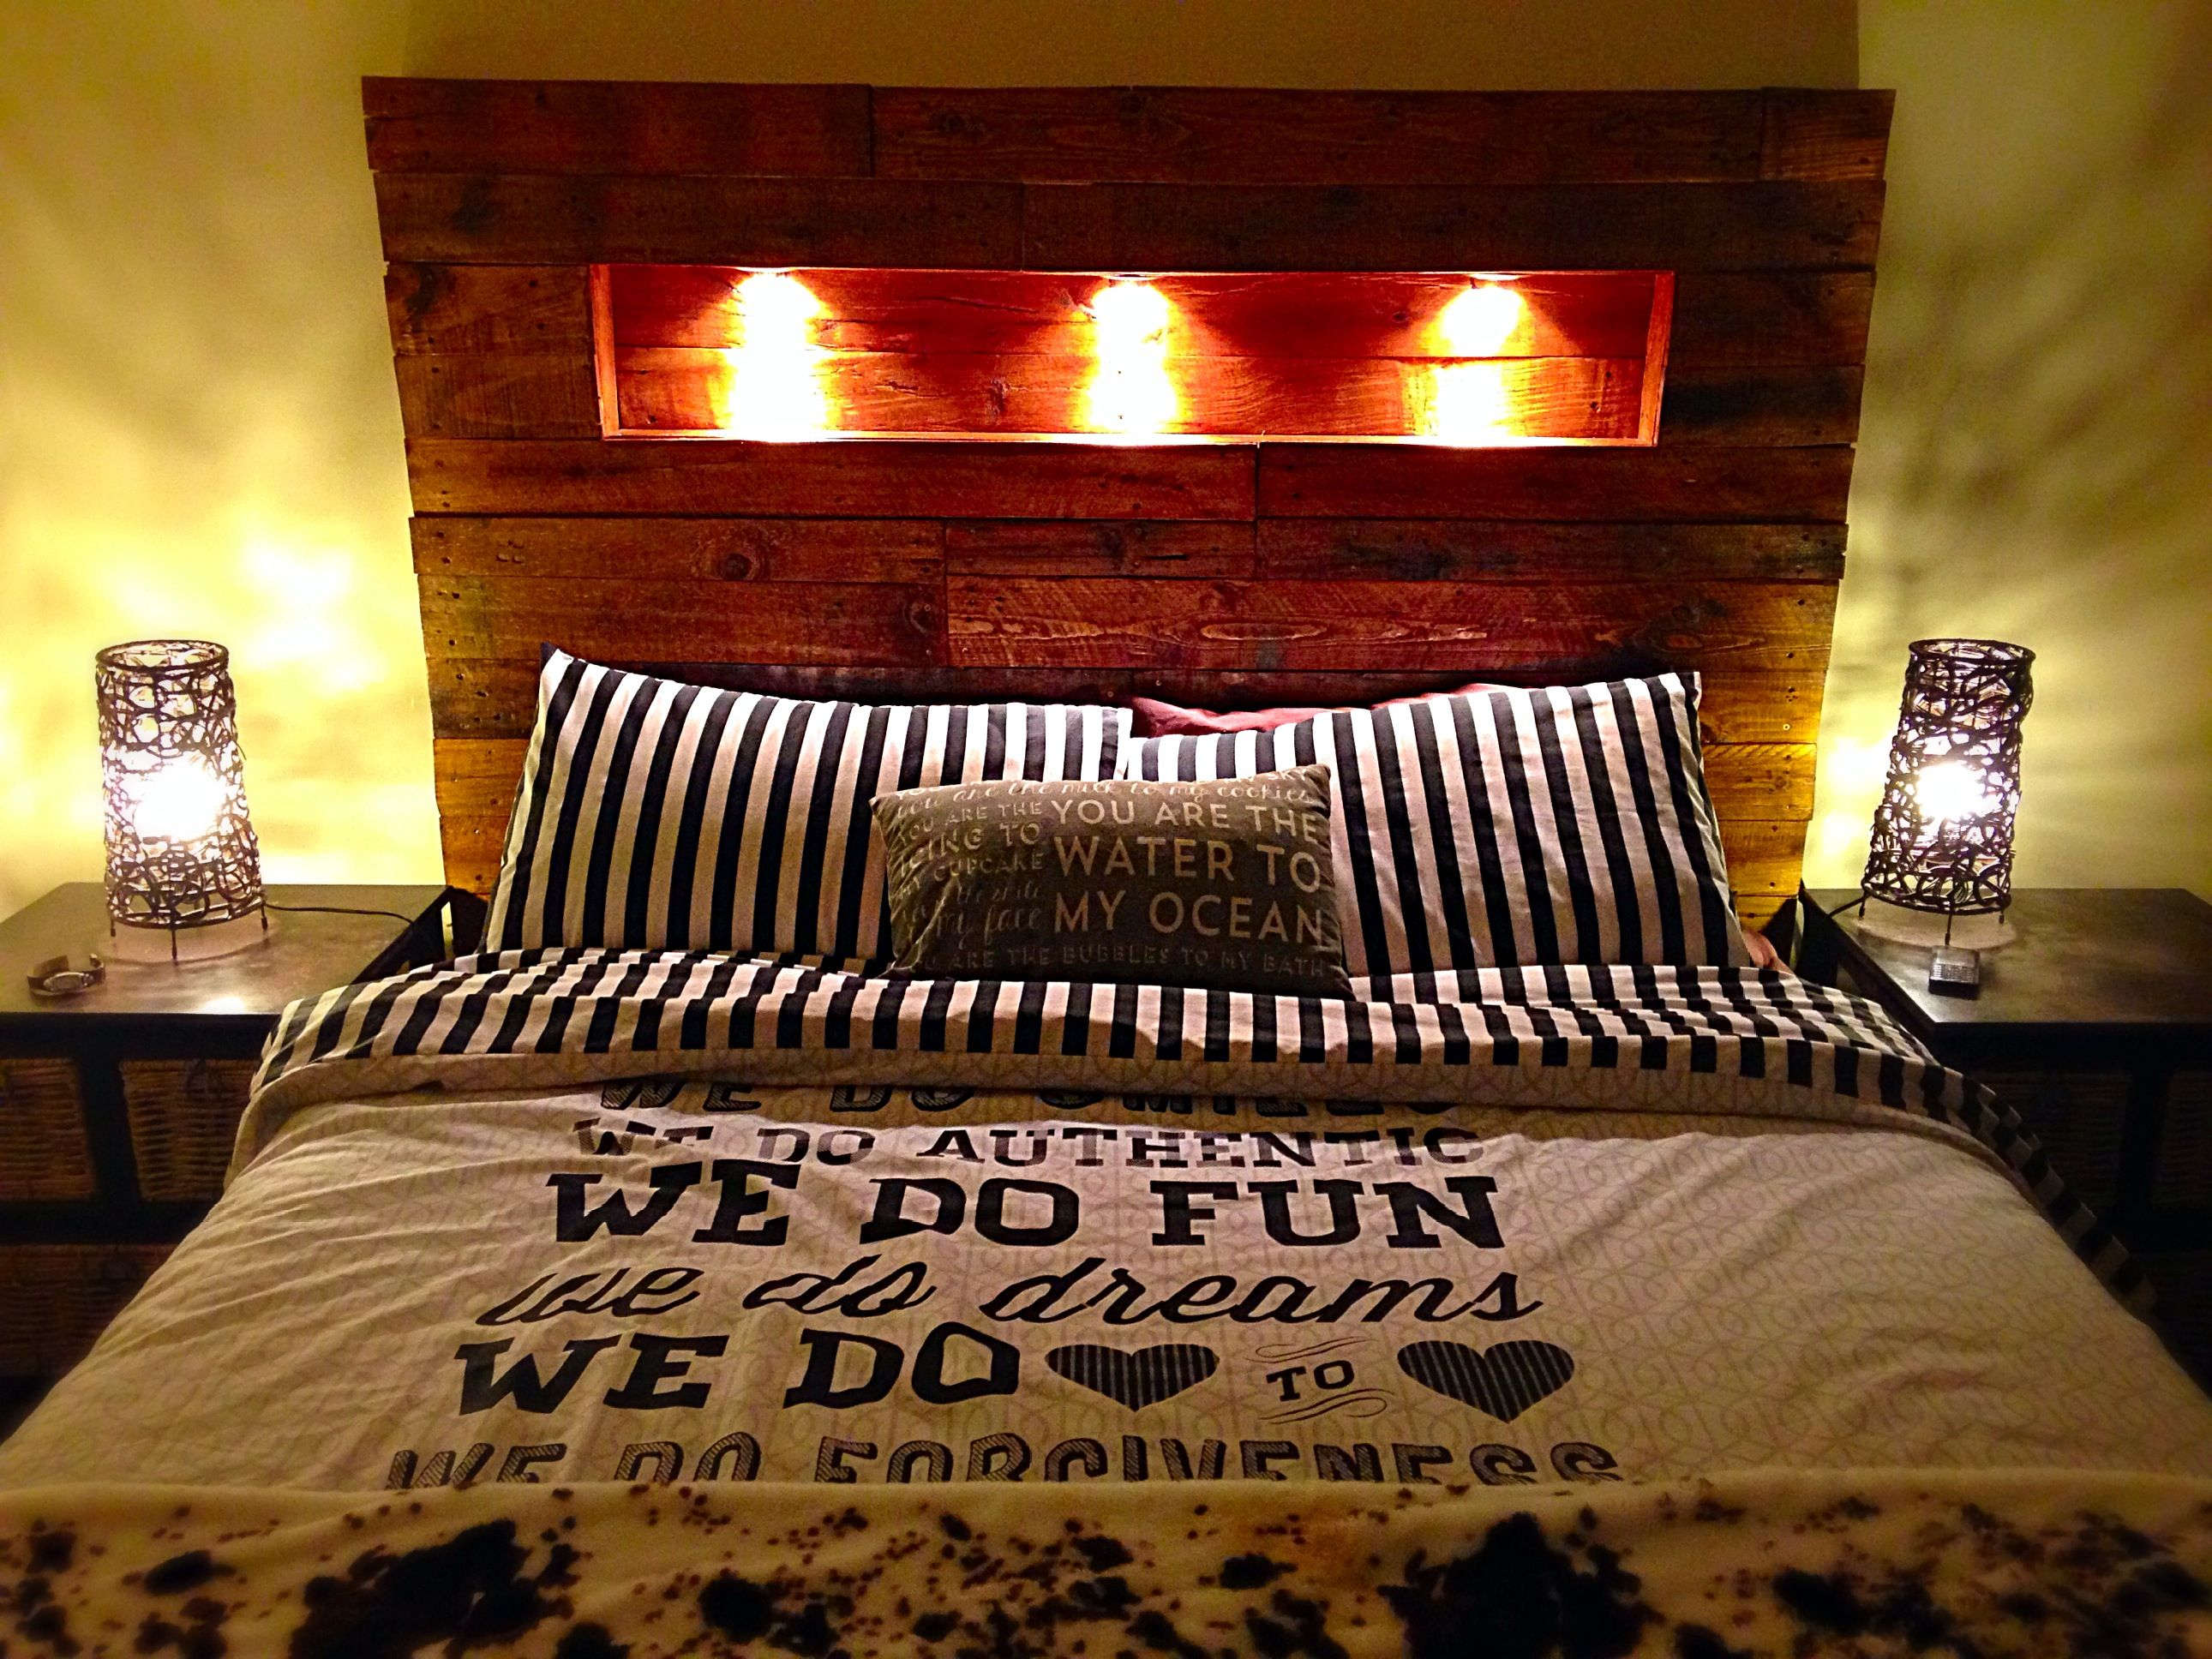 Queen Size Bed Headboard With Fitted Downlights All From Old Pallets Queen Size Bed Headboard Headboards For Beds Headboard